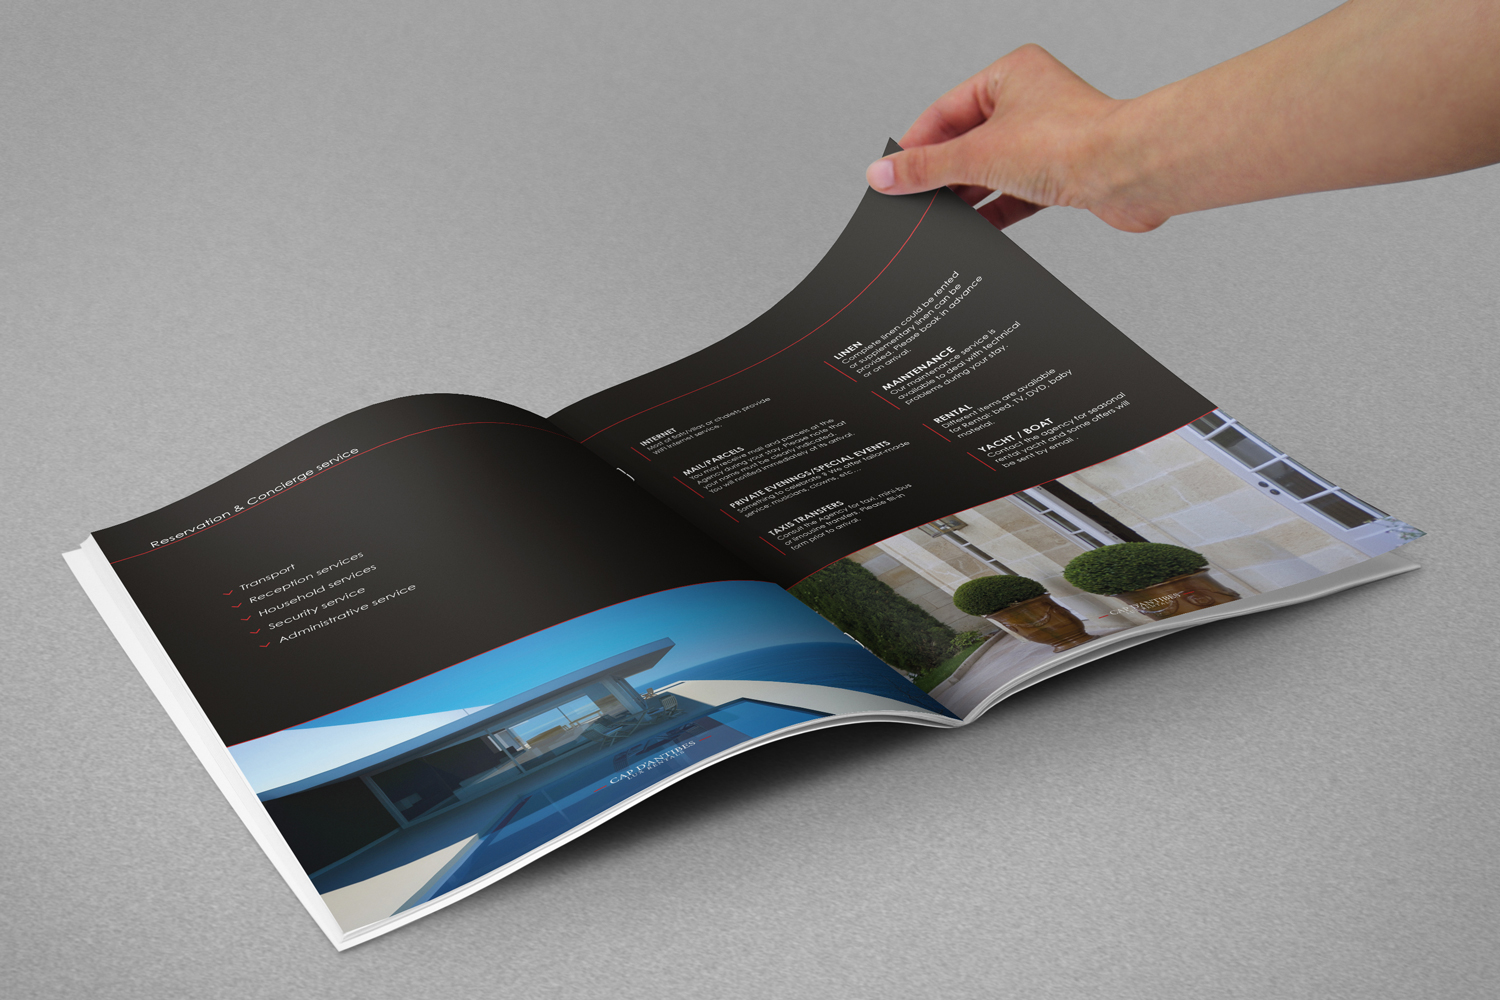 LuxRental-Brochure-Mockup-interieur